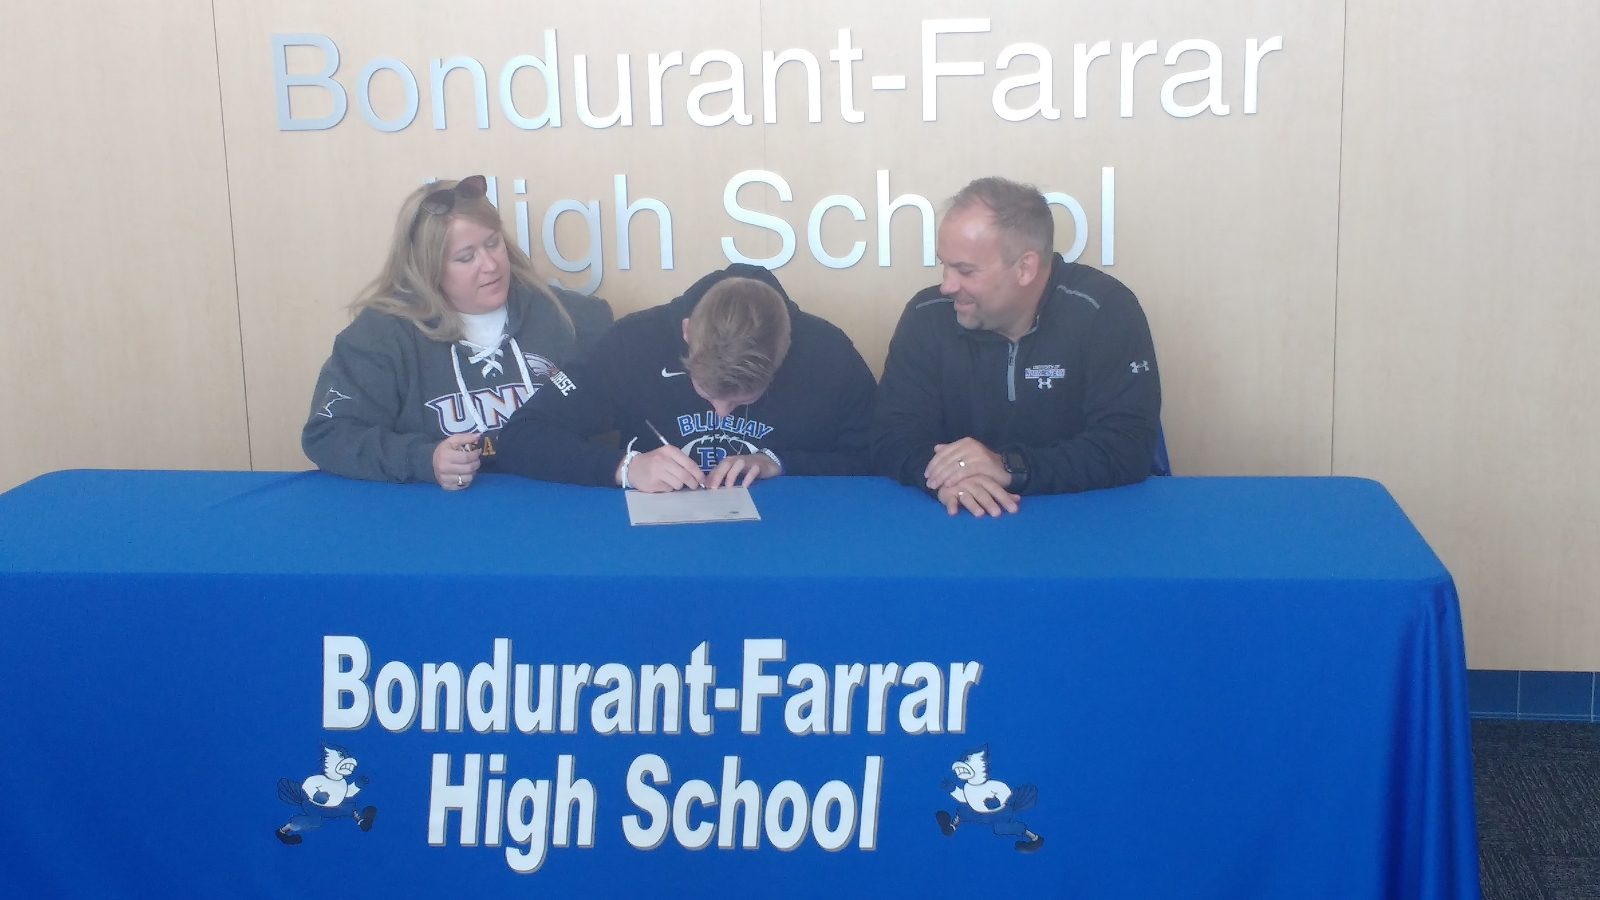 Lohse signs with Northwestern (St. Paul) Football!